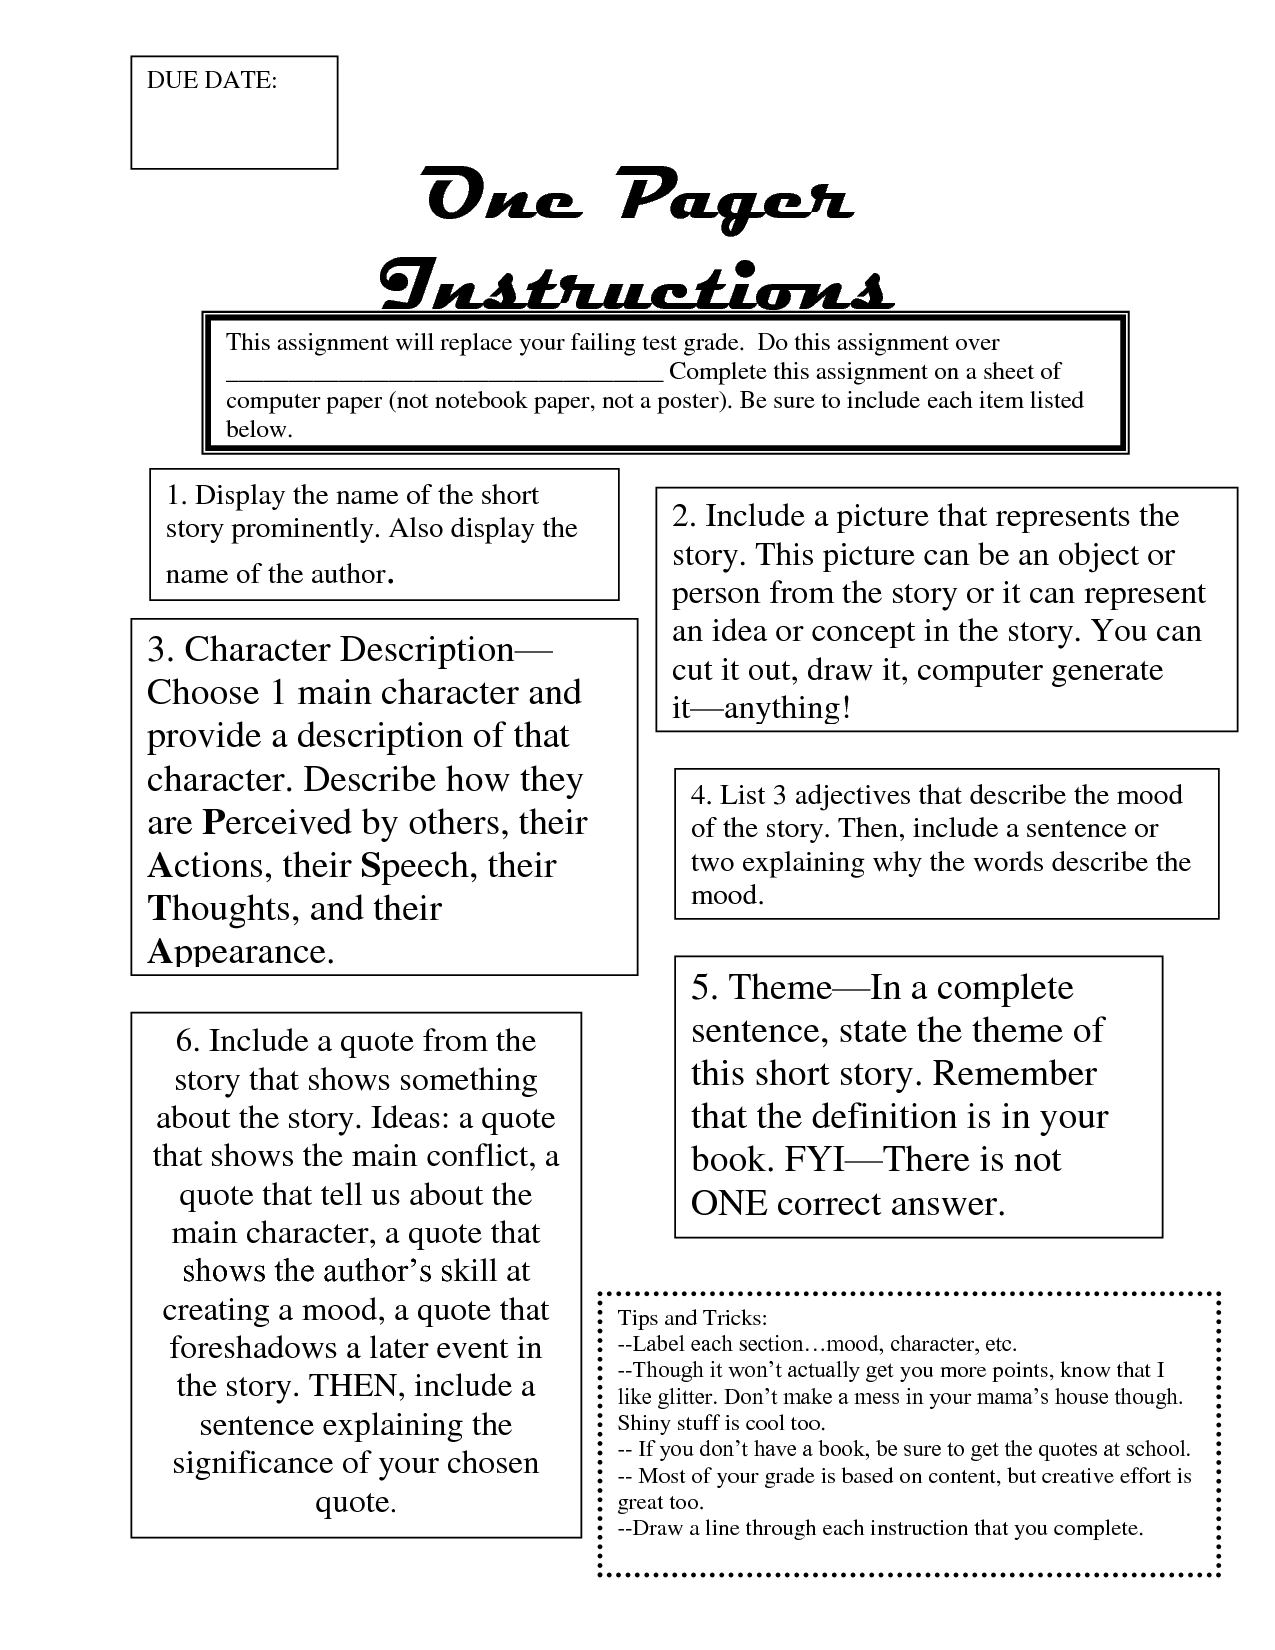 One Pager Example Instructions